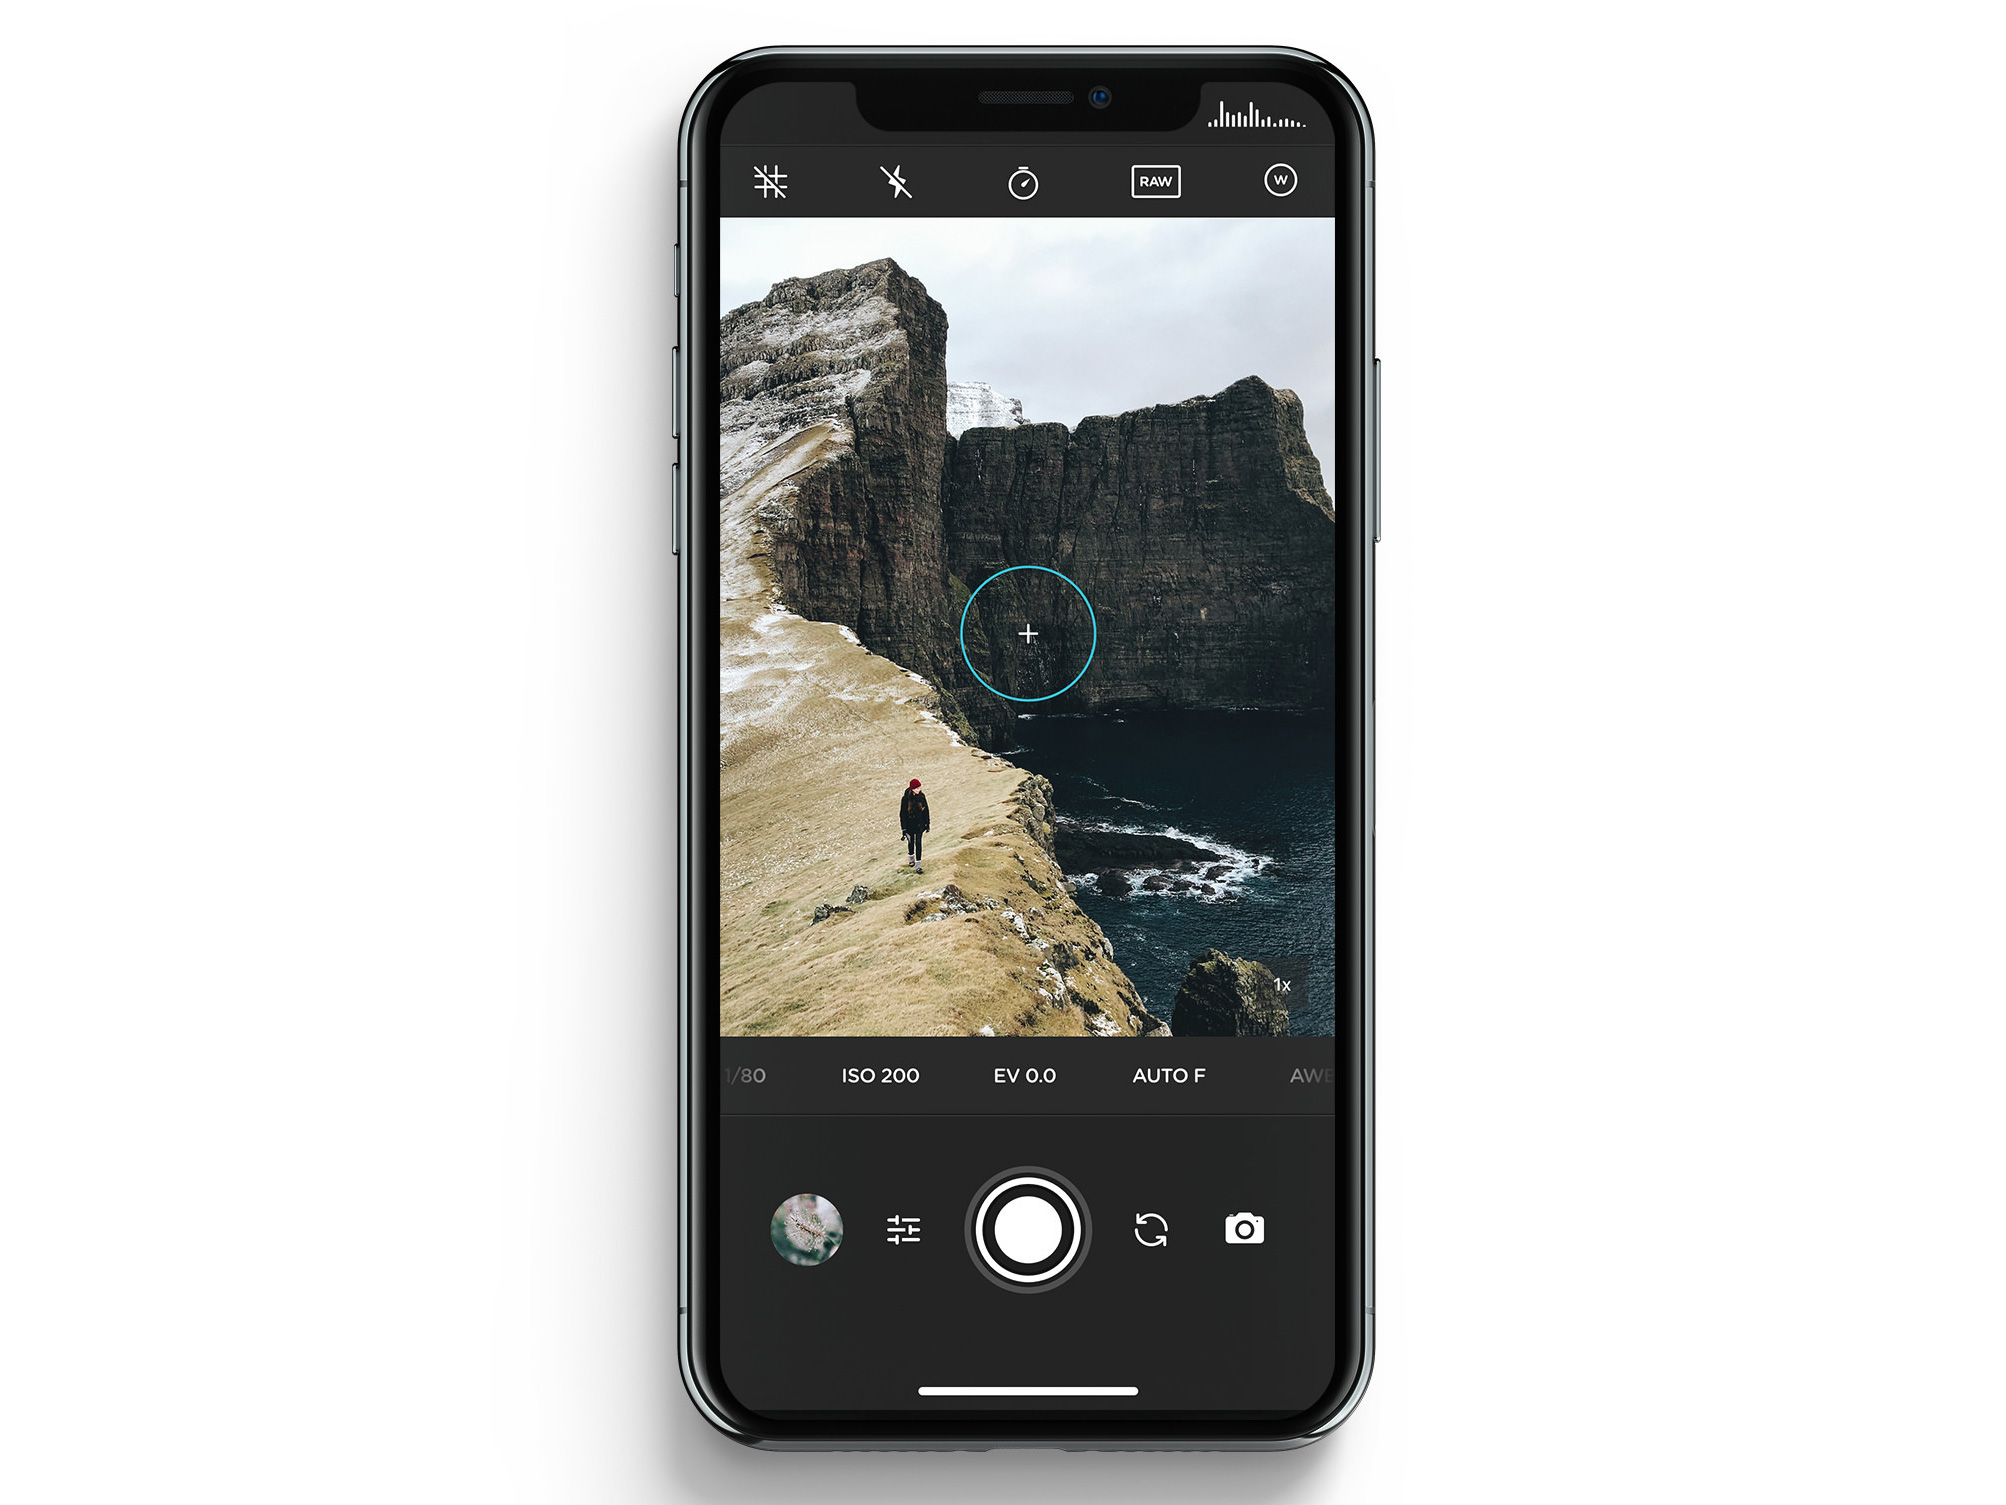 Moment launches camera app with focus on manual control